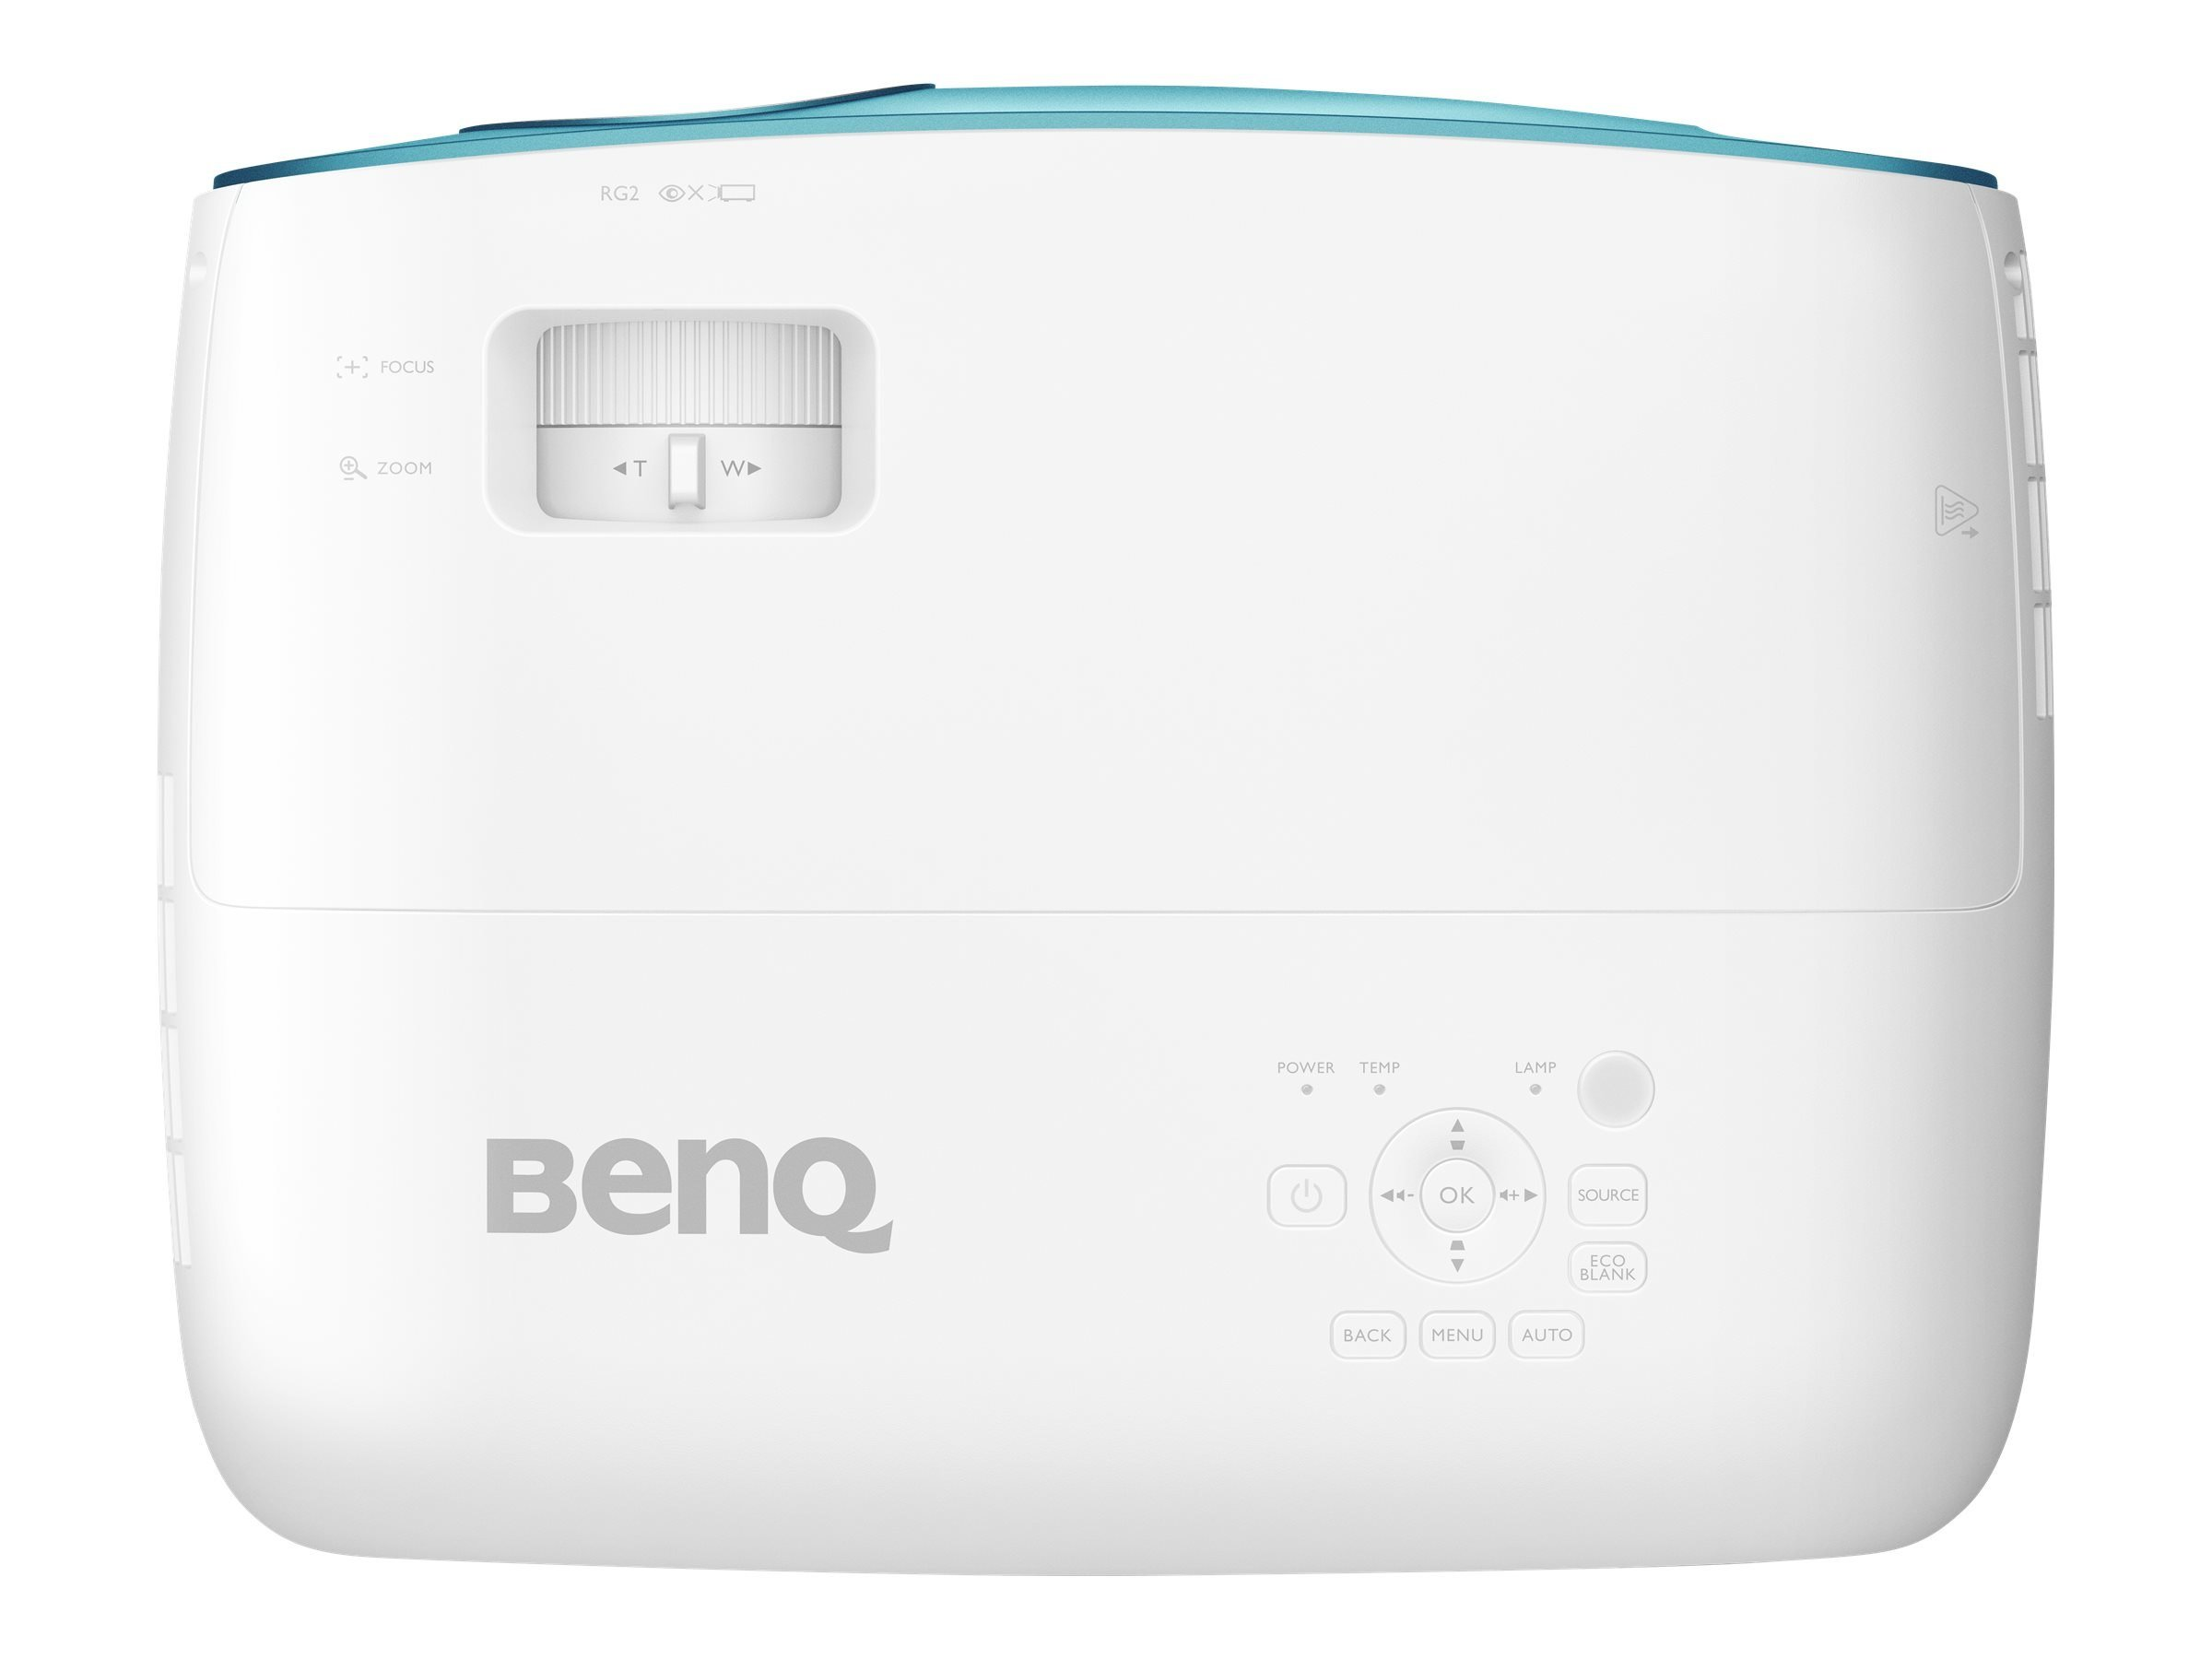 benq tk800 review 5